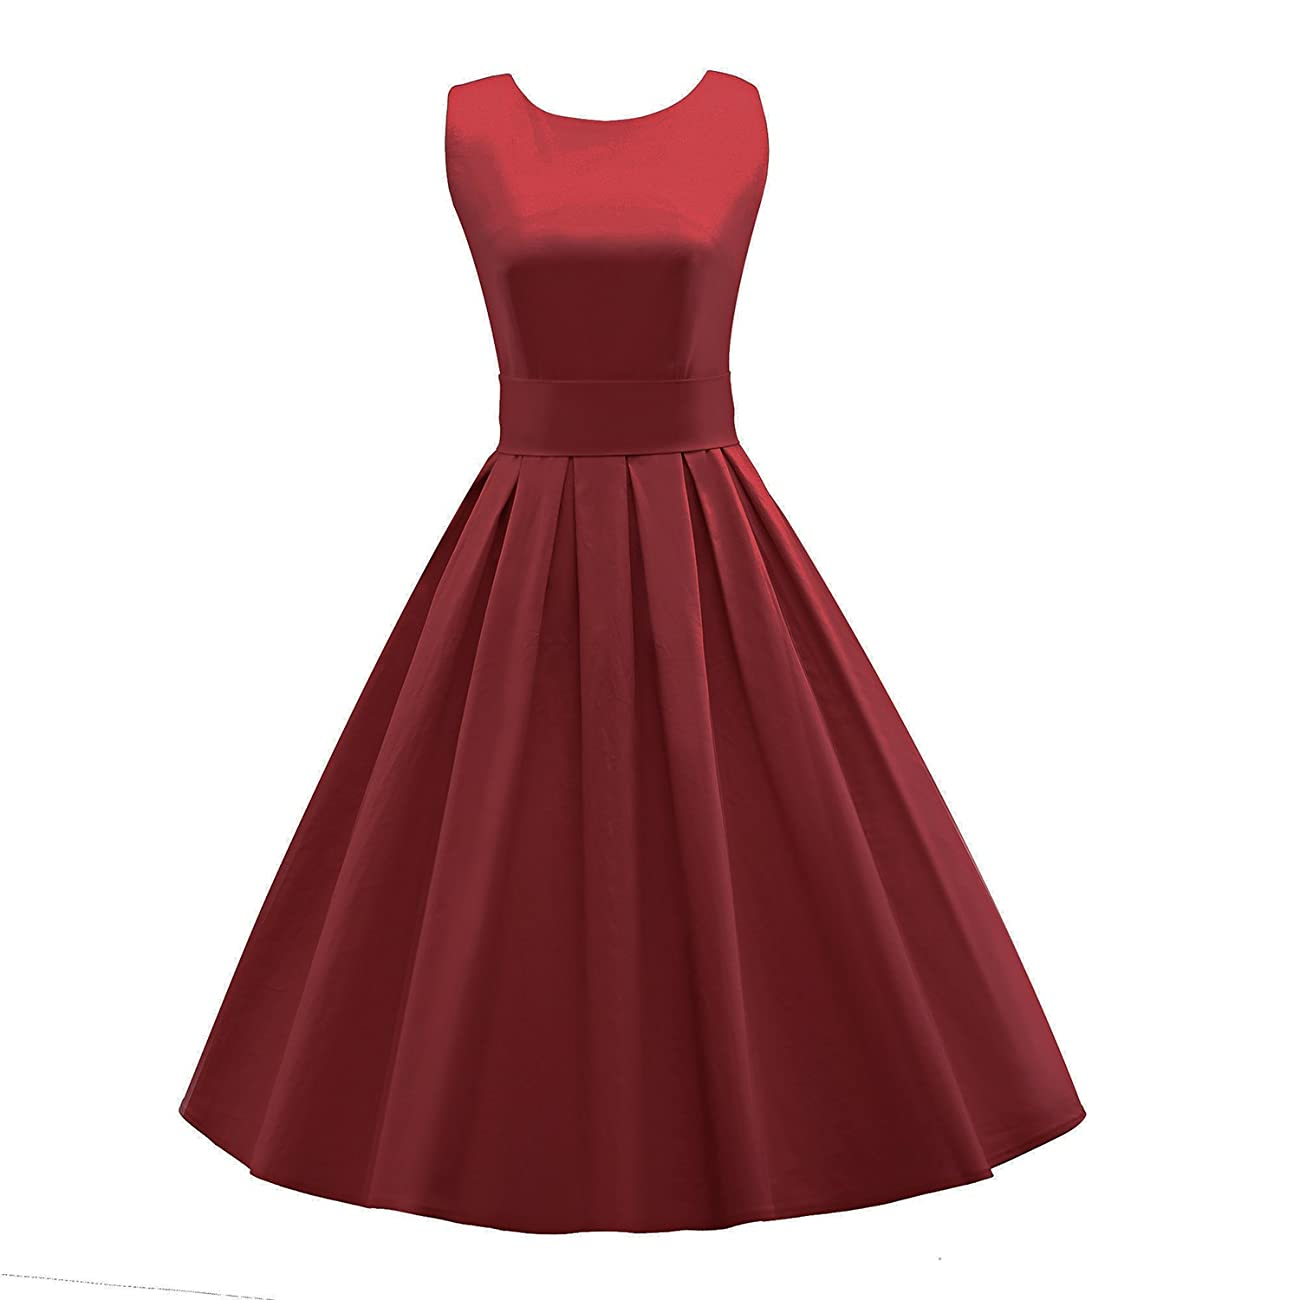 LUOUSE 'Lana' Vintage 1950's Inspired Rockabilly Swing Dress 0